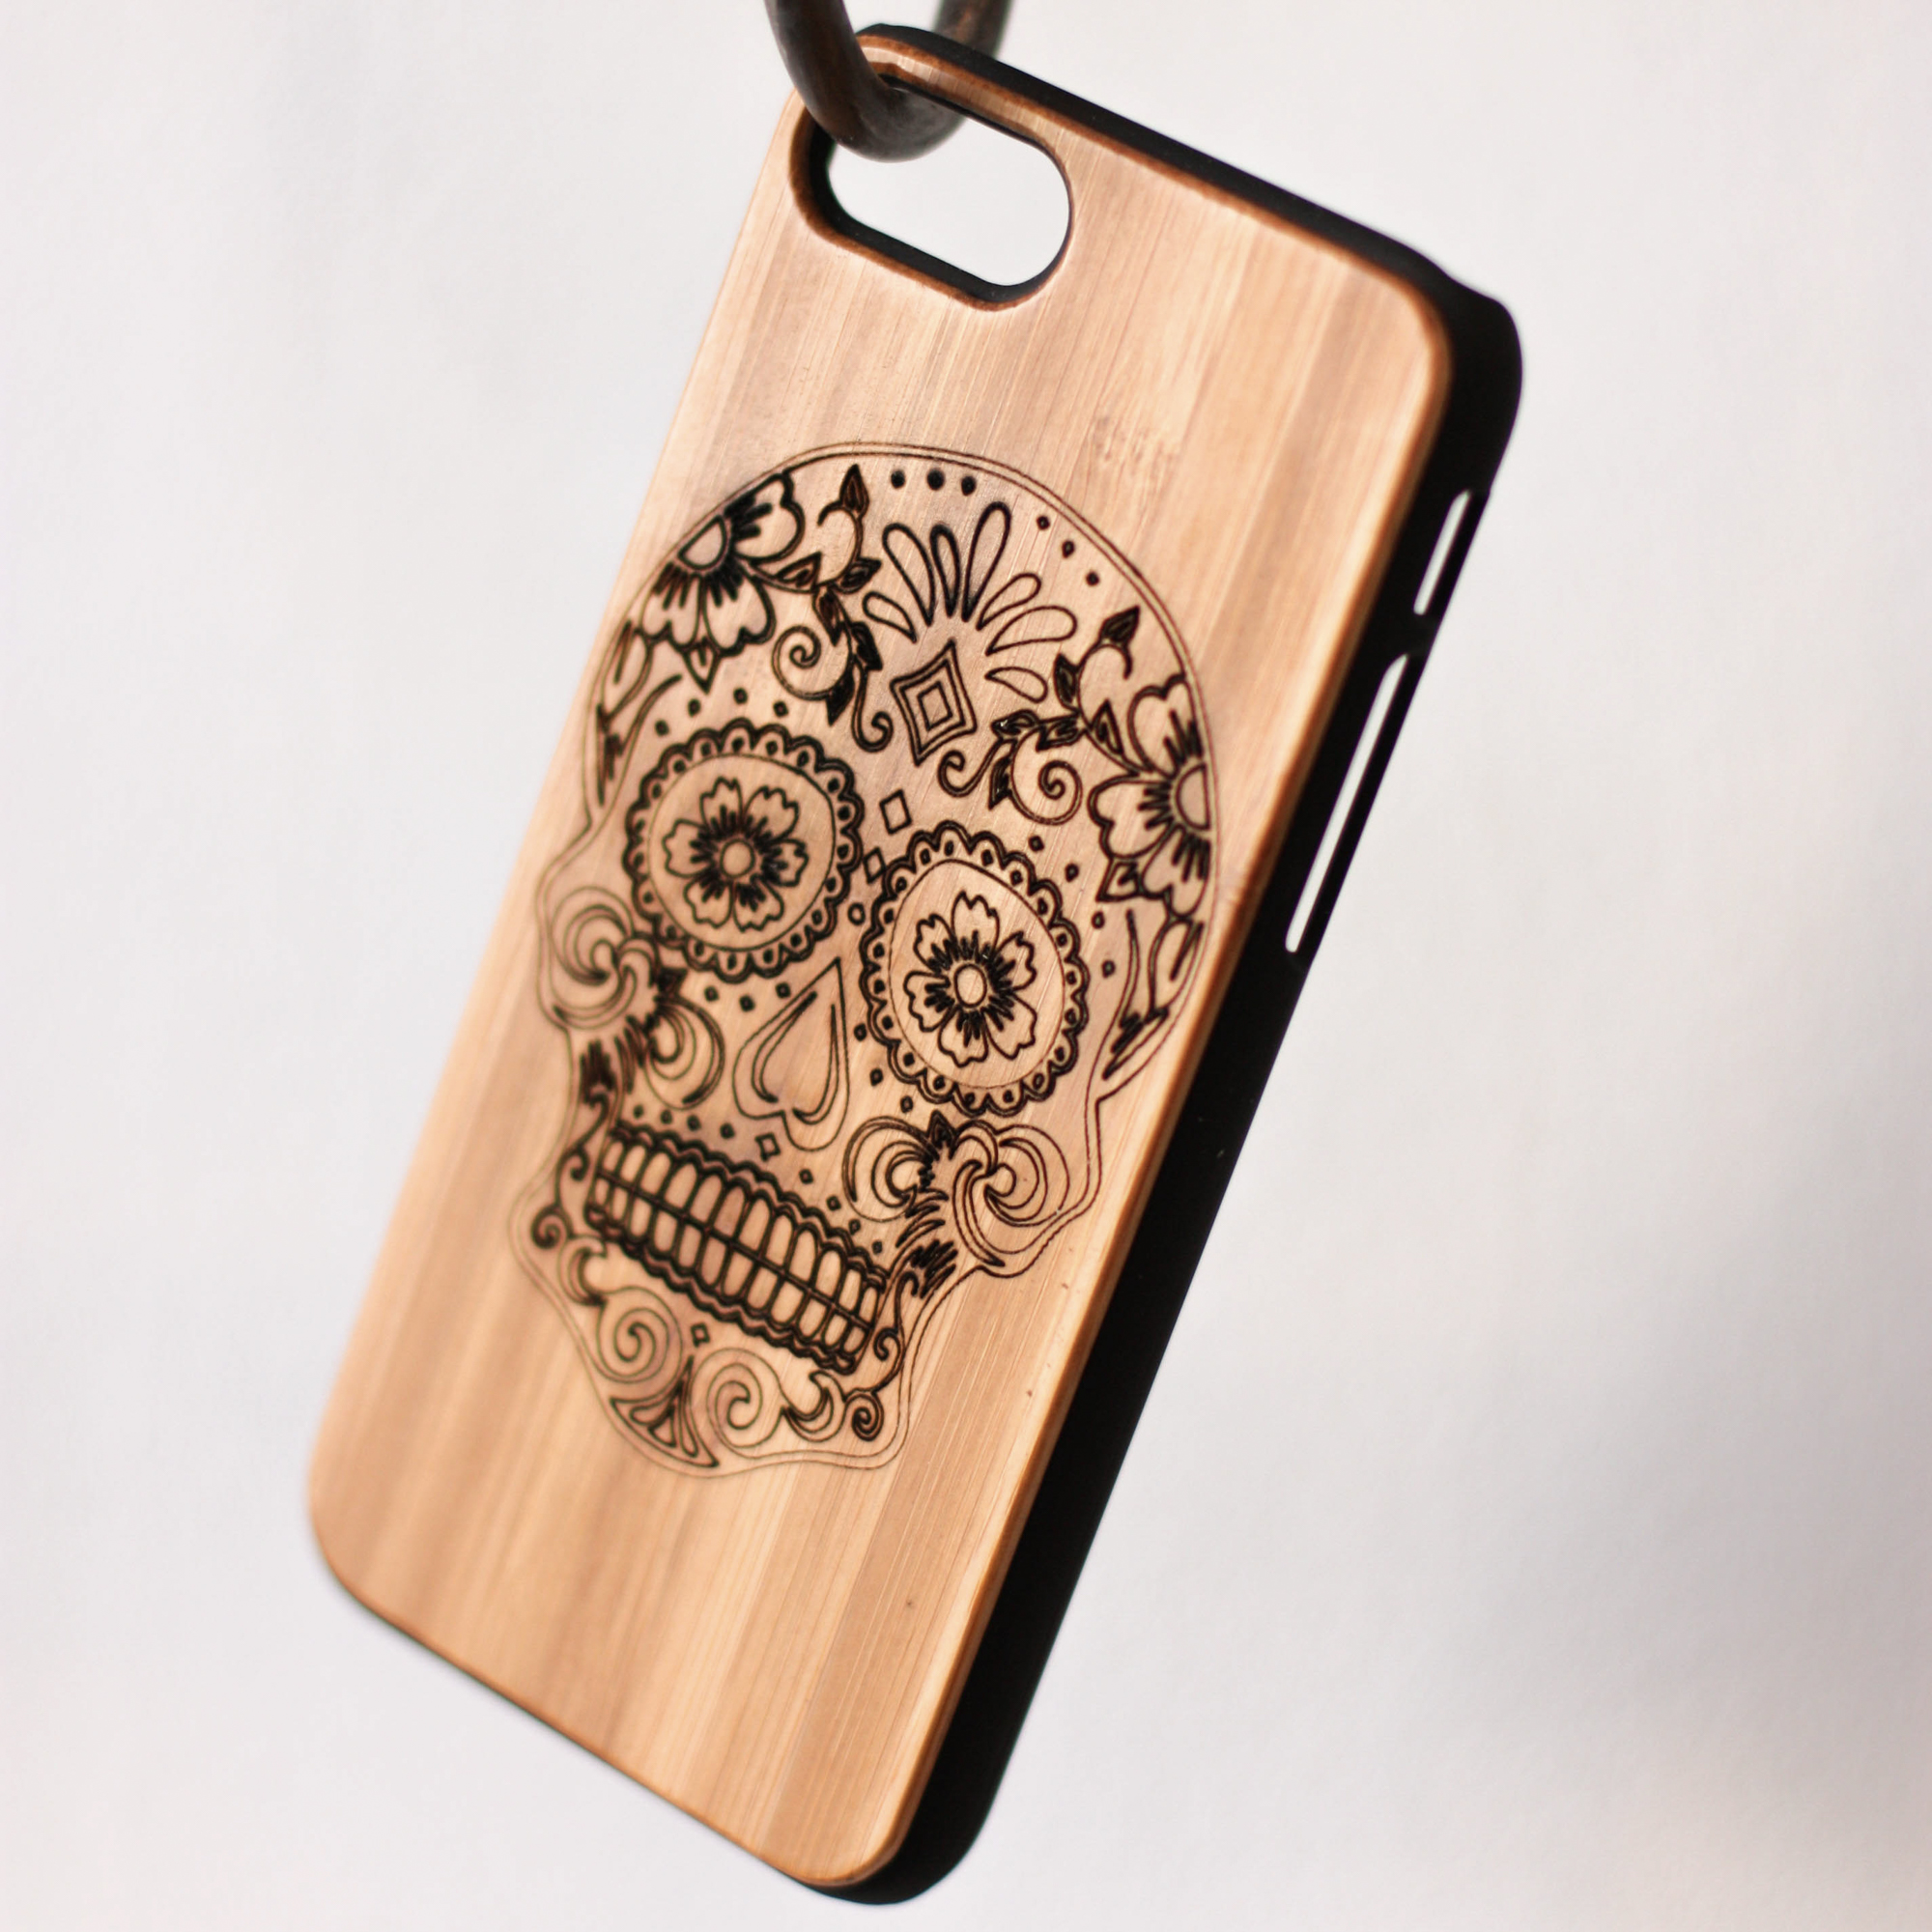 laser engraved phone case buy in Amsterdam